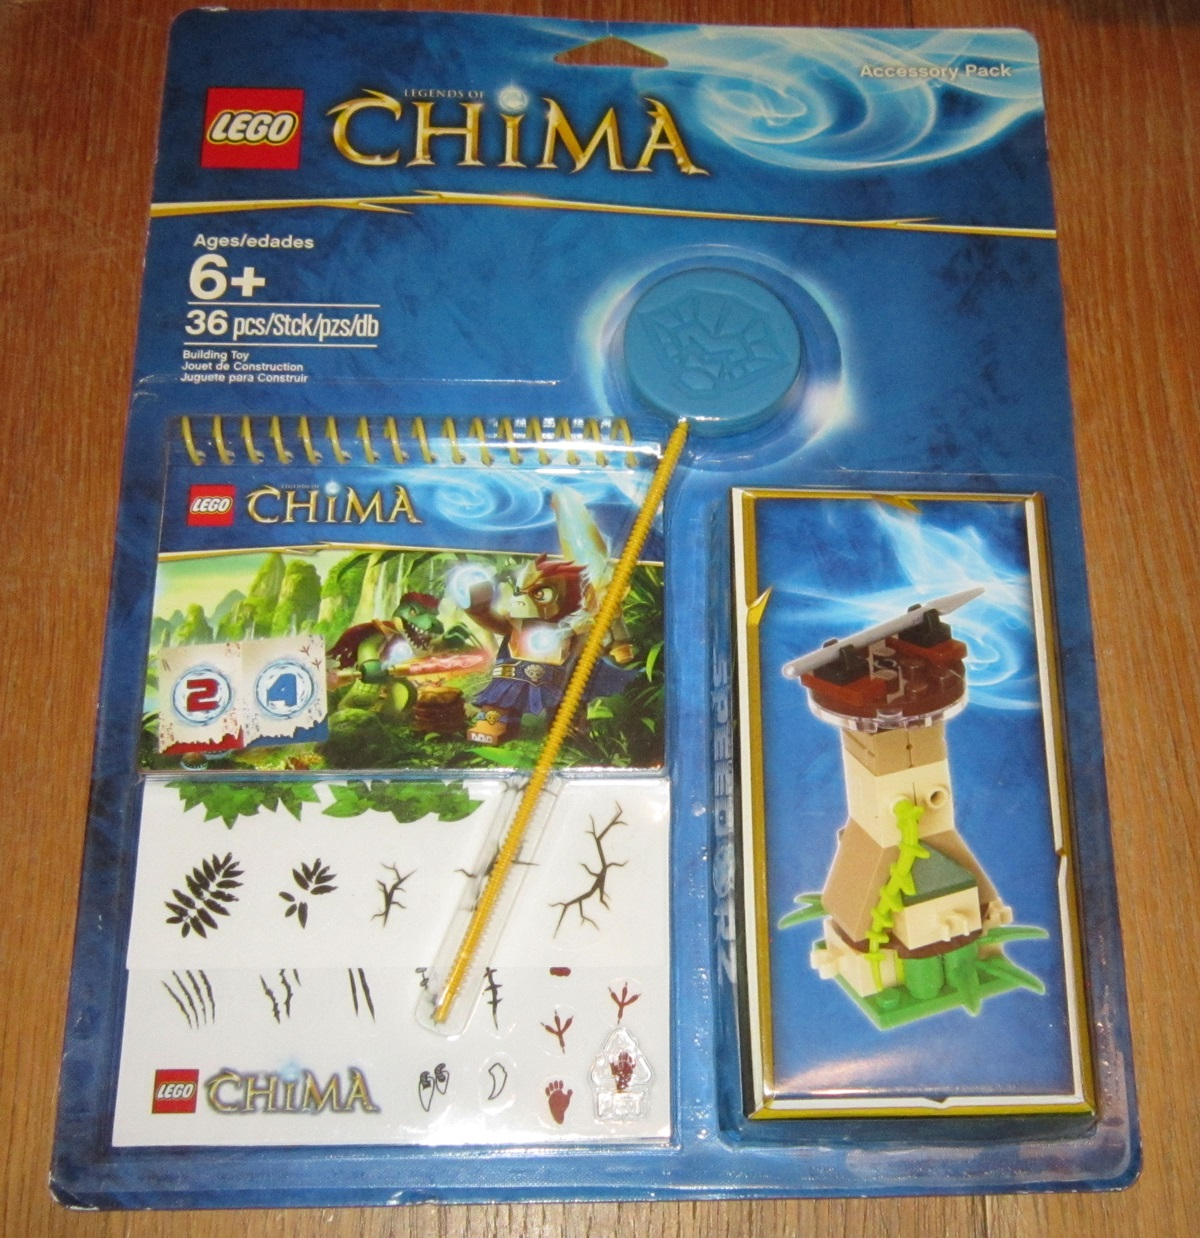 1000 Lego Chima Building toy